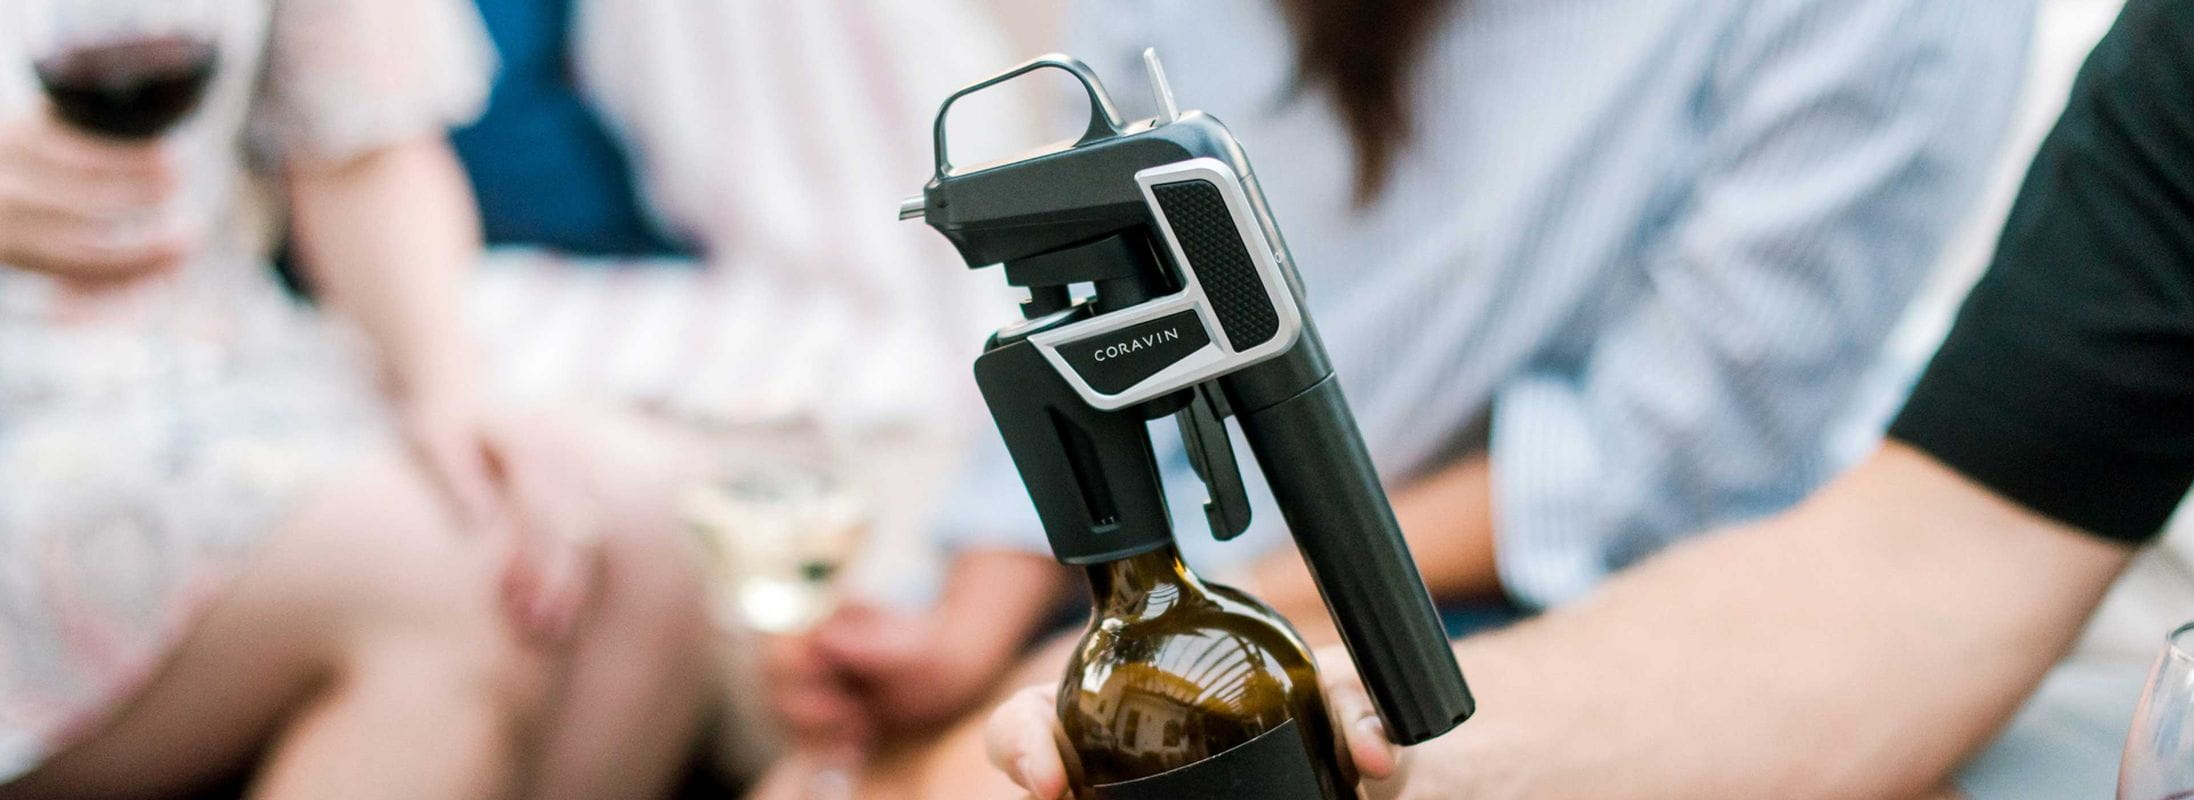 Coravin Model Two on top of a wine bottle